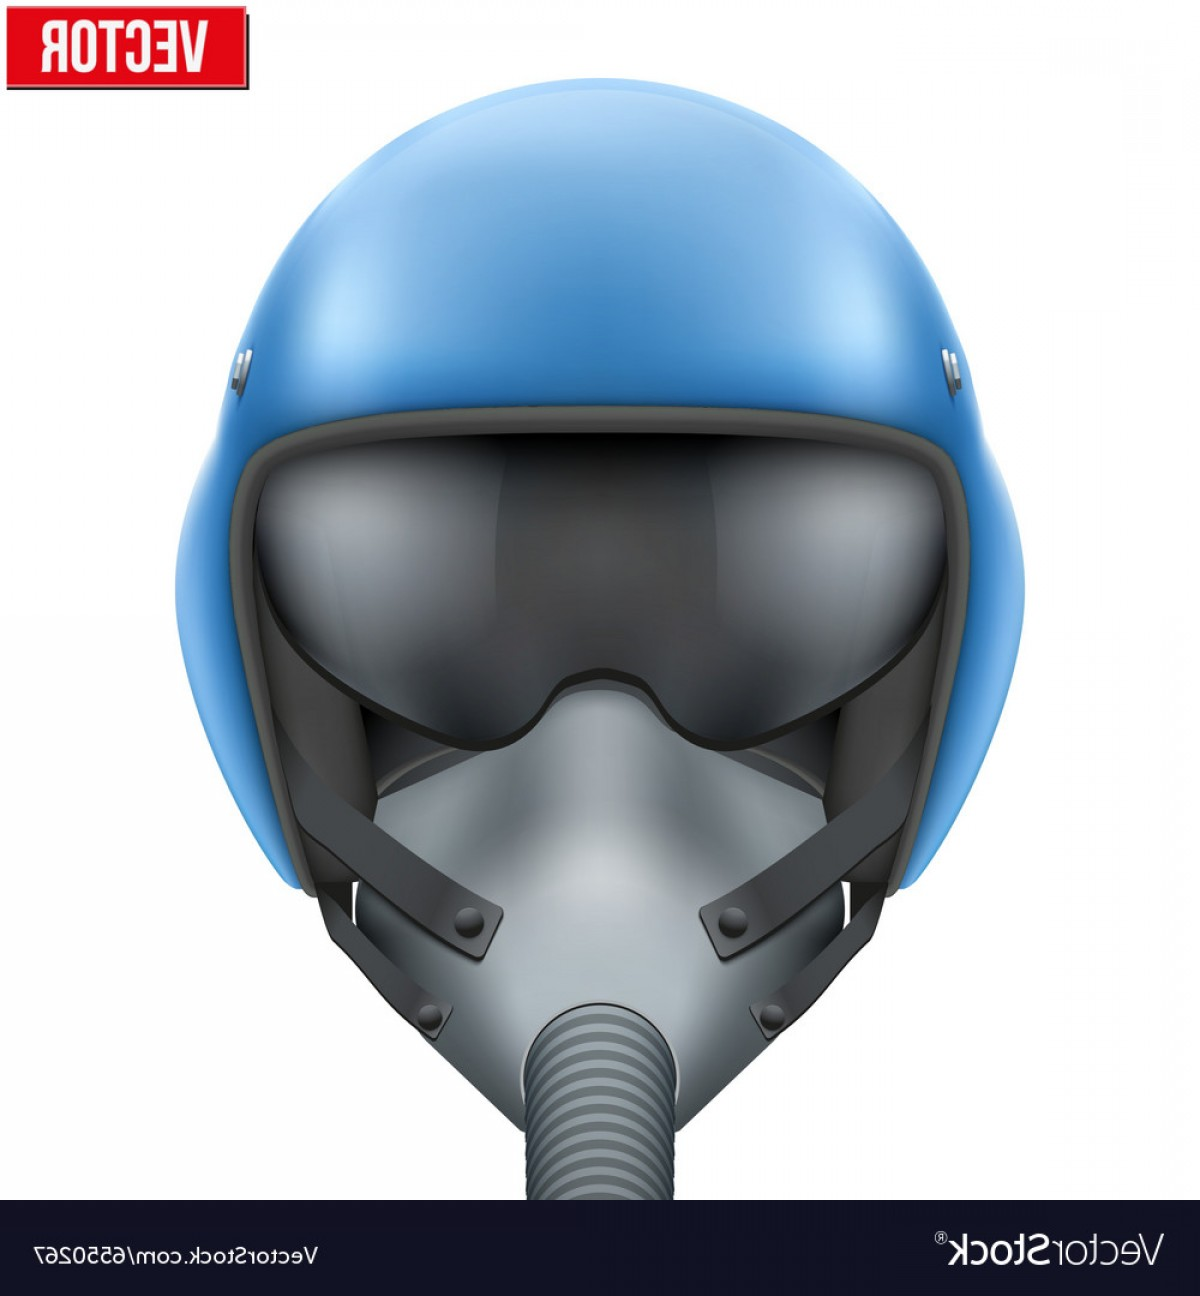 Fighter Helmet Vectors: Military Flight Fighter Pilot Helmet Vector